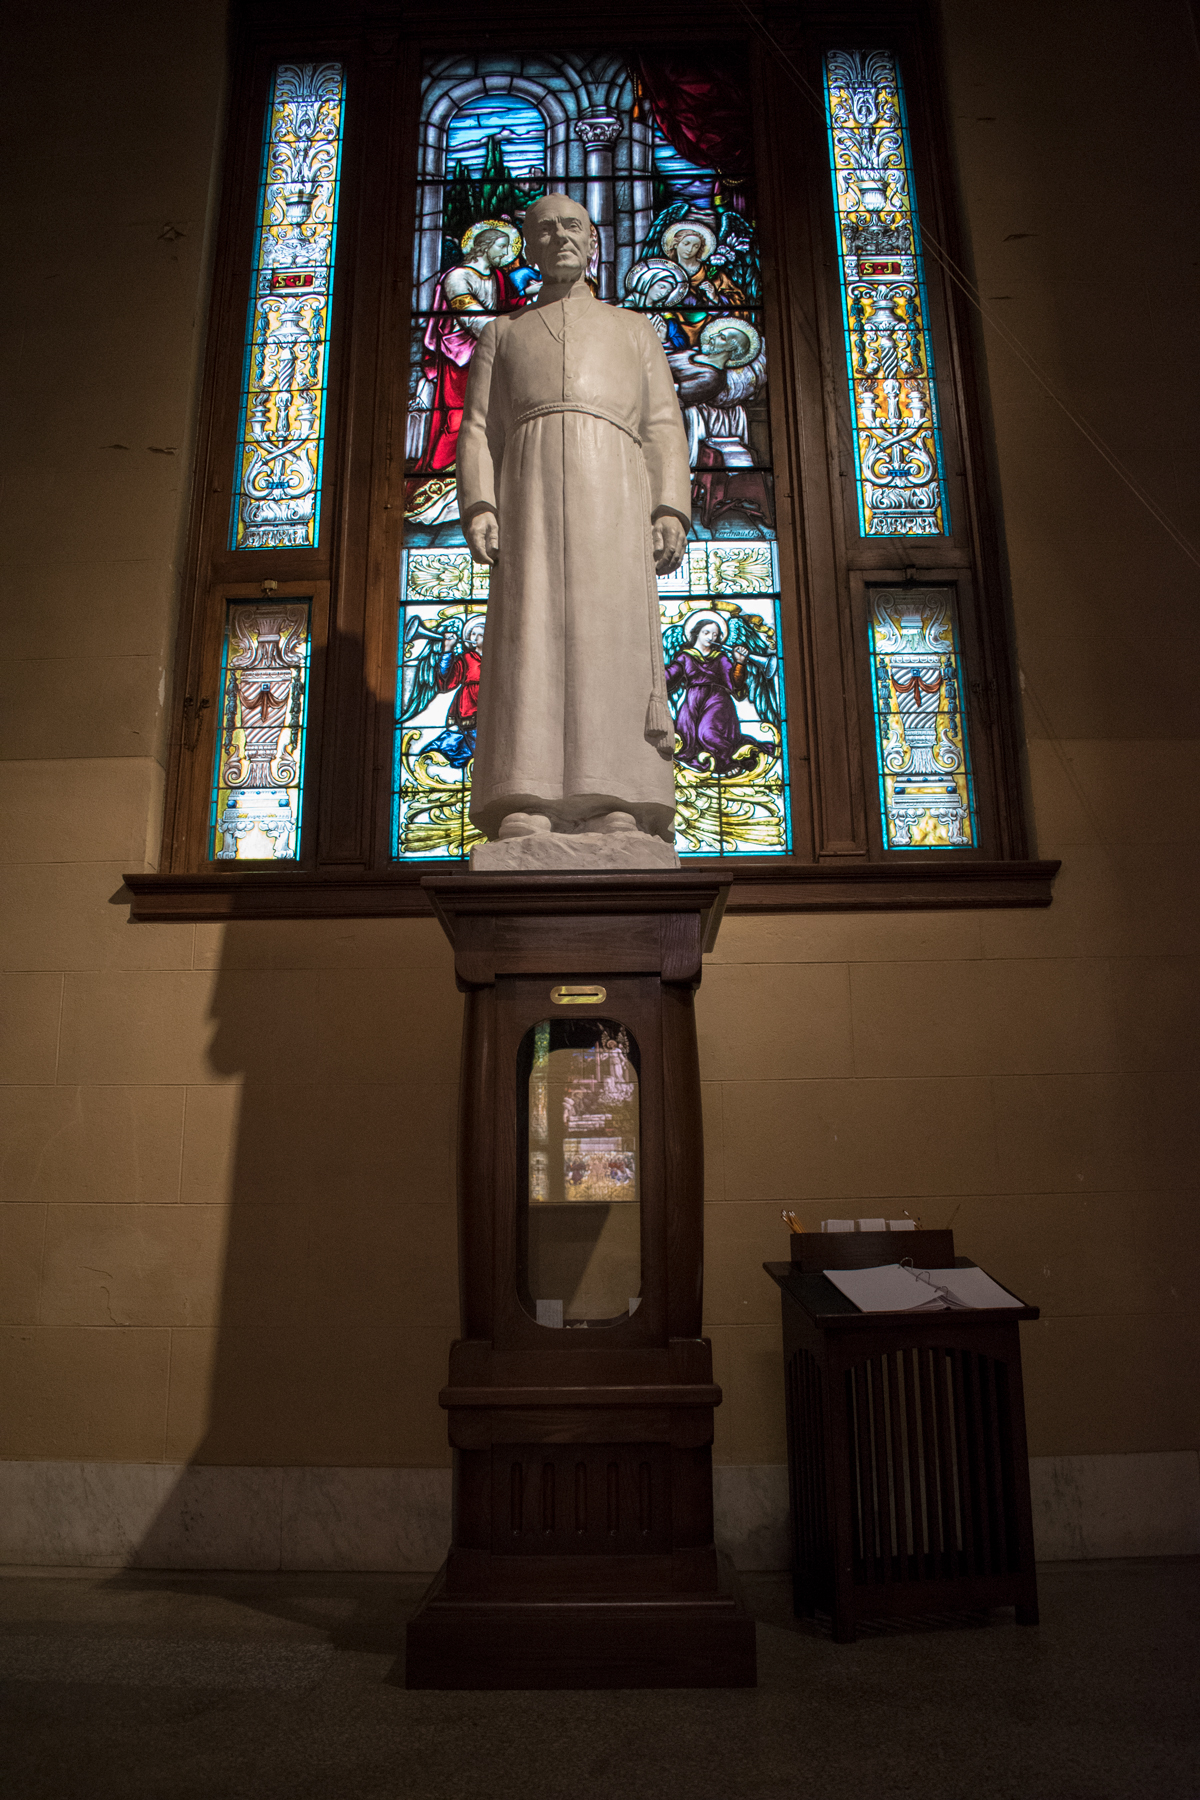 Statue of Saint Brother André in the Crypt Church at Saint Joseph's Oratory, November 2017